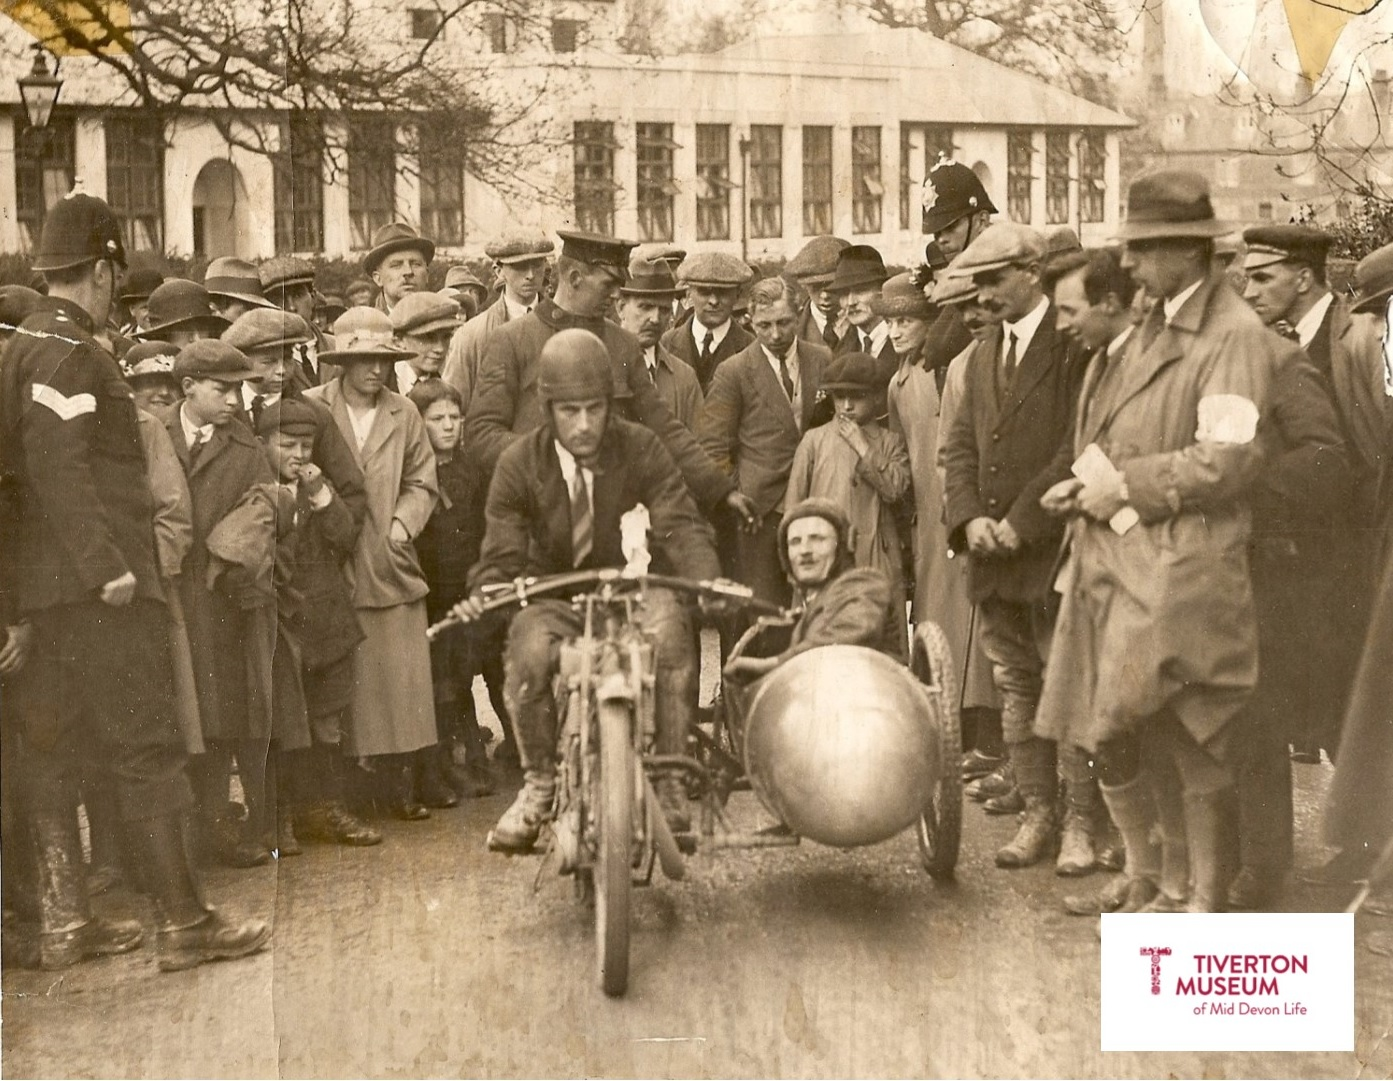 An old fashioned motorbike and sidecar with a crowd of people